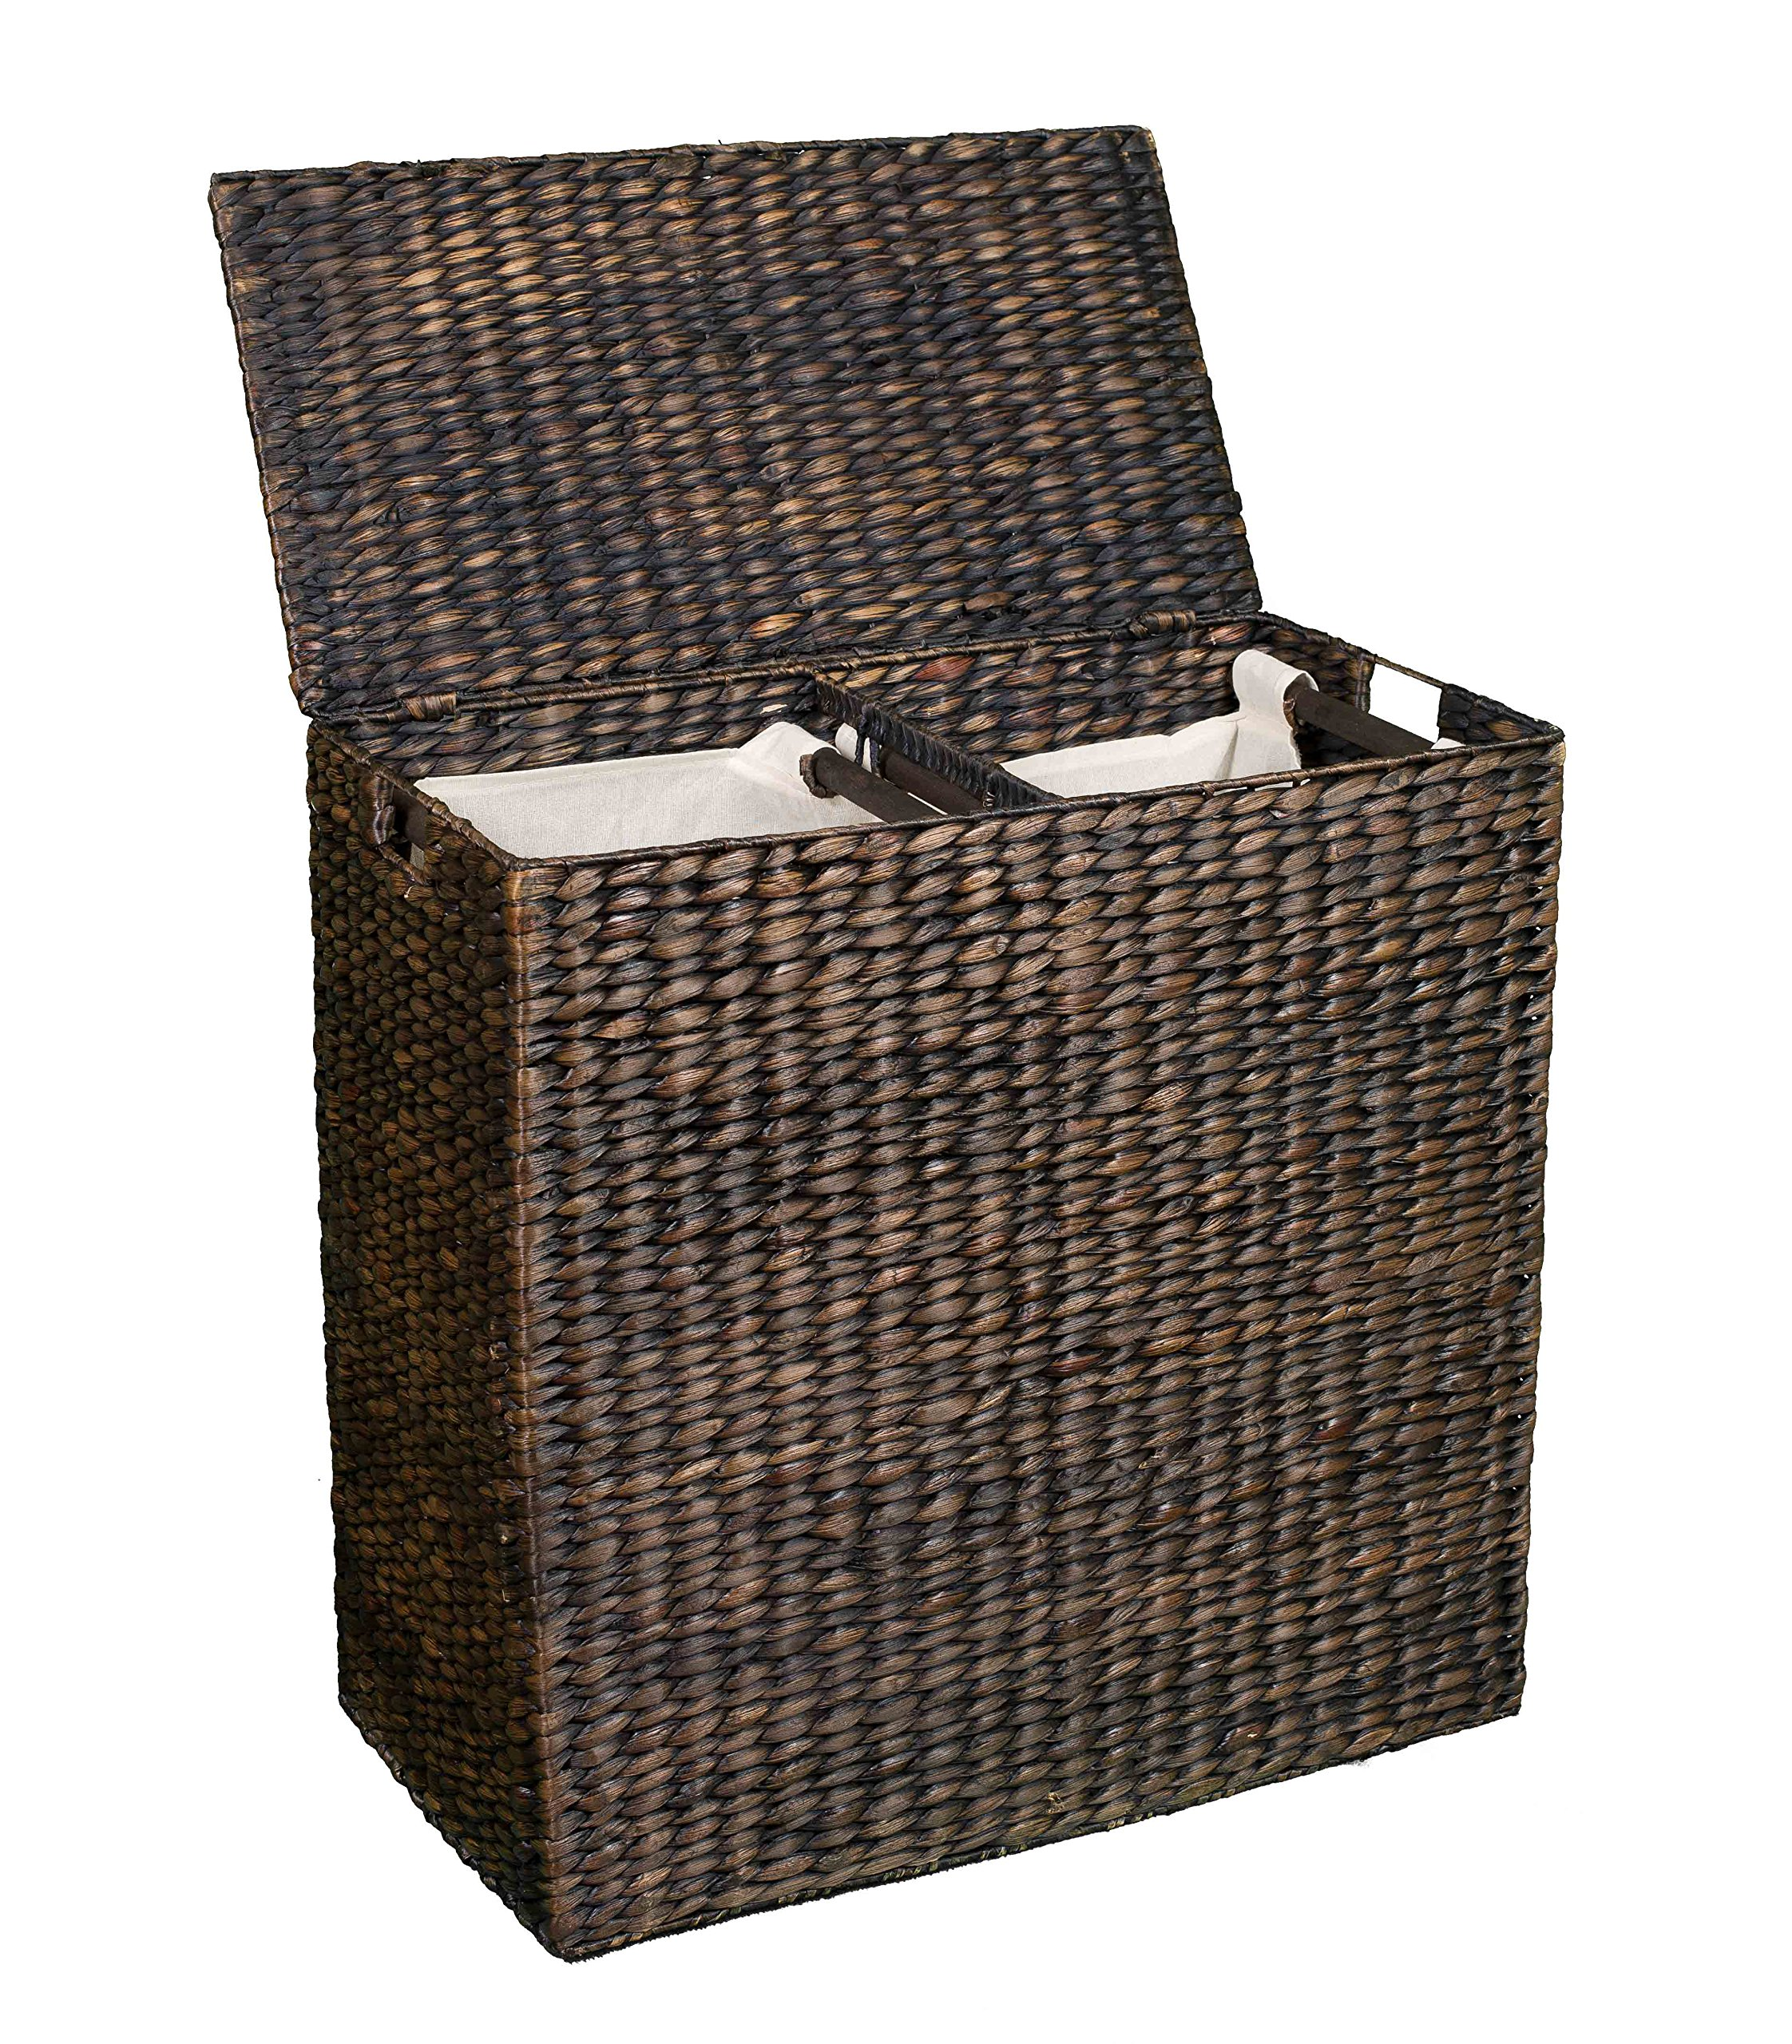 Birdrock Home Water Hyacinth Laundry Hamper With Divided